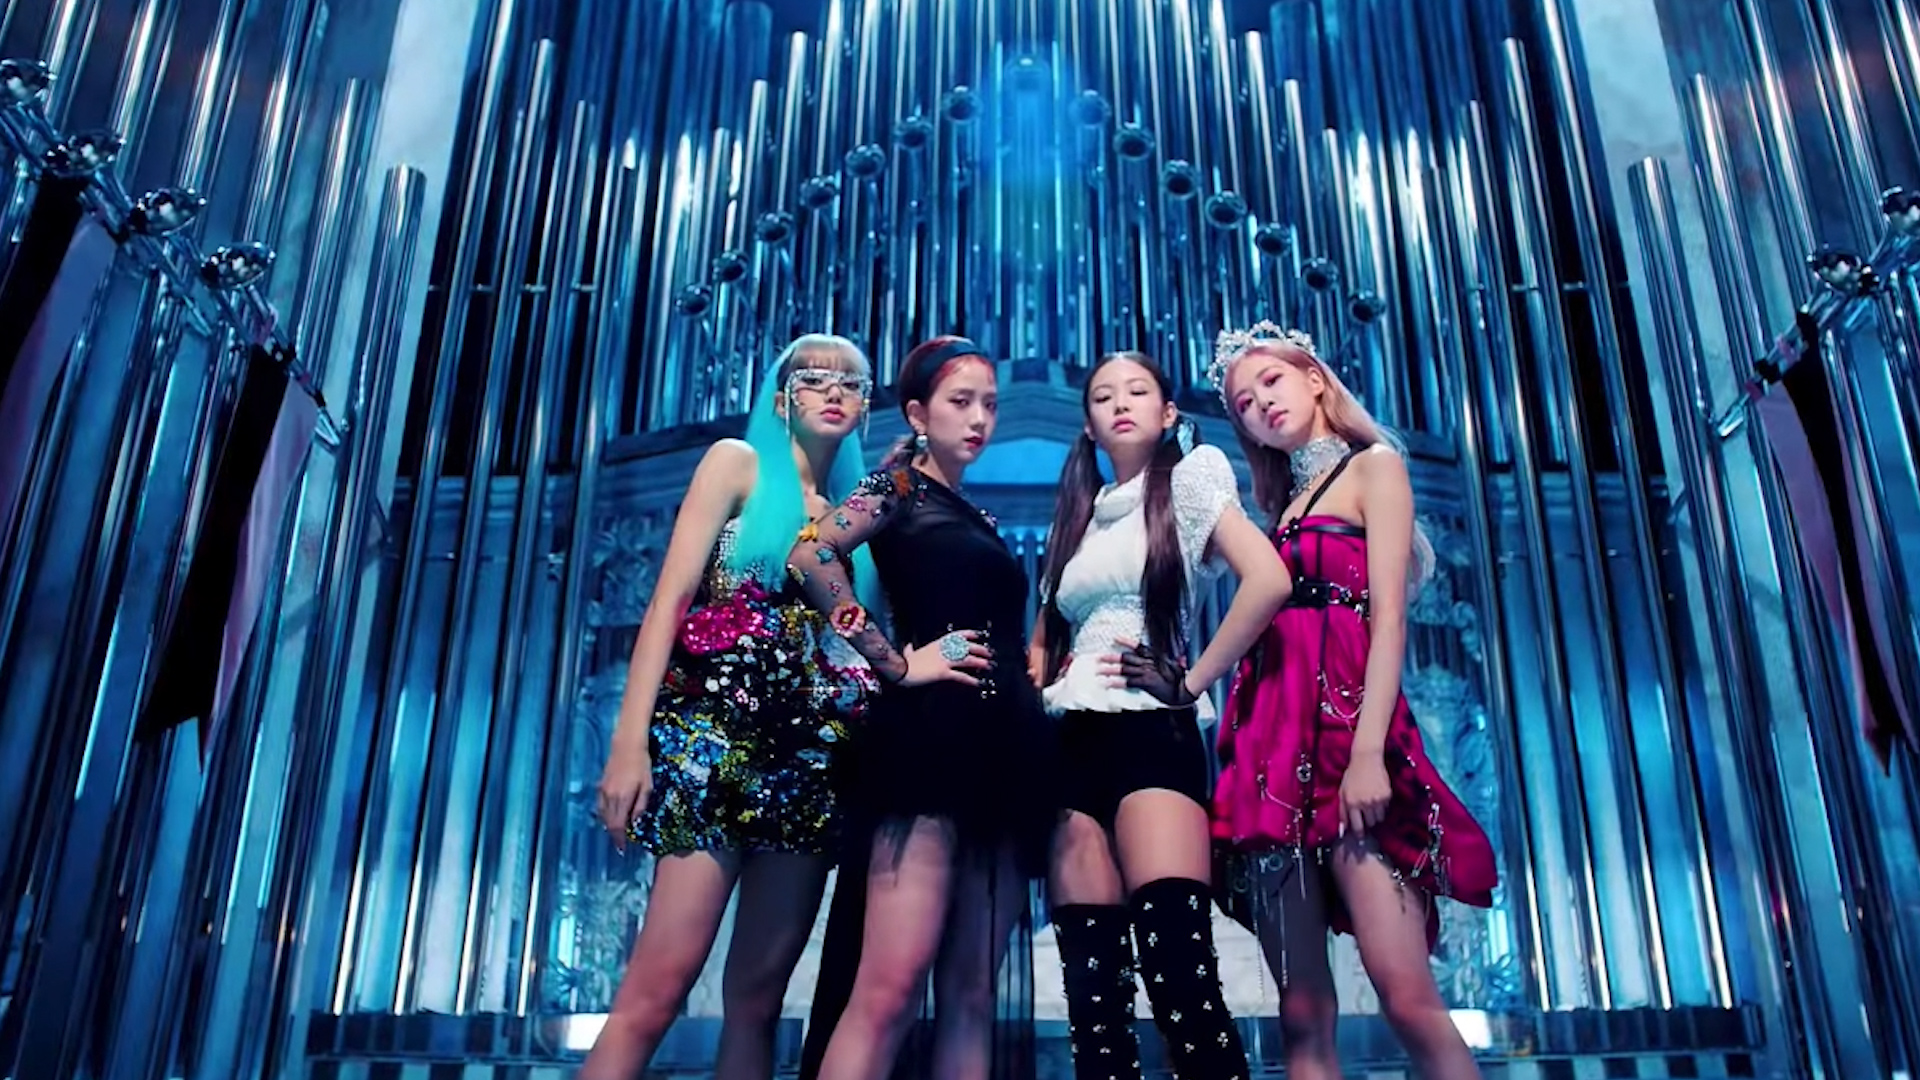 K Pop Group Blackpink Smashes Youtube Video Record With